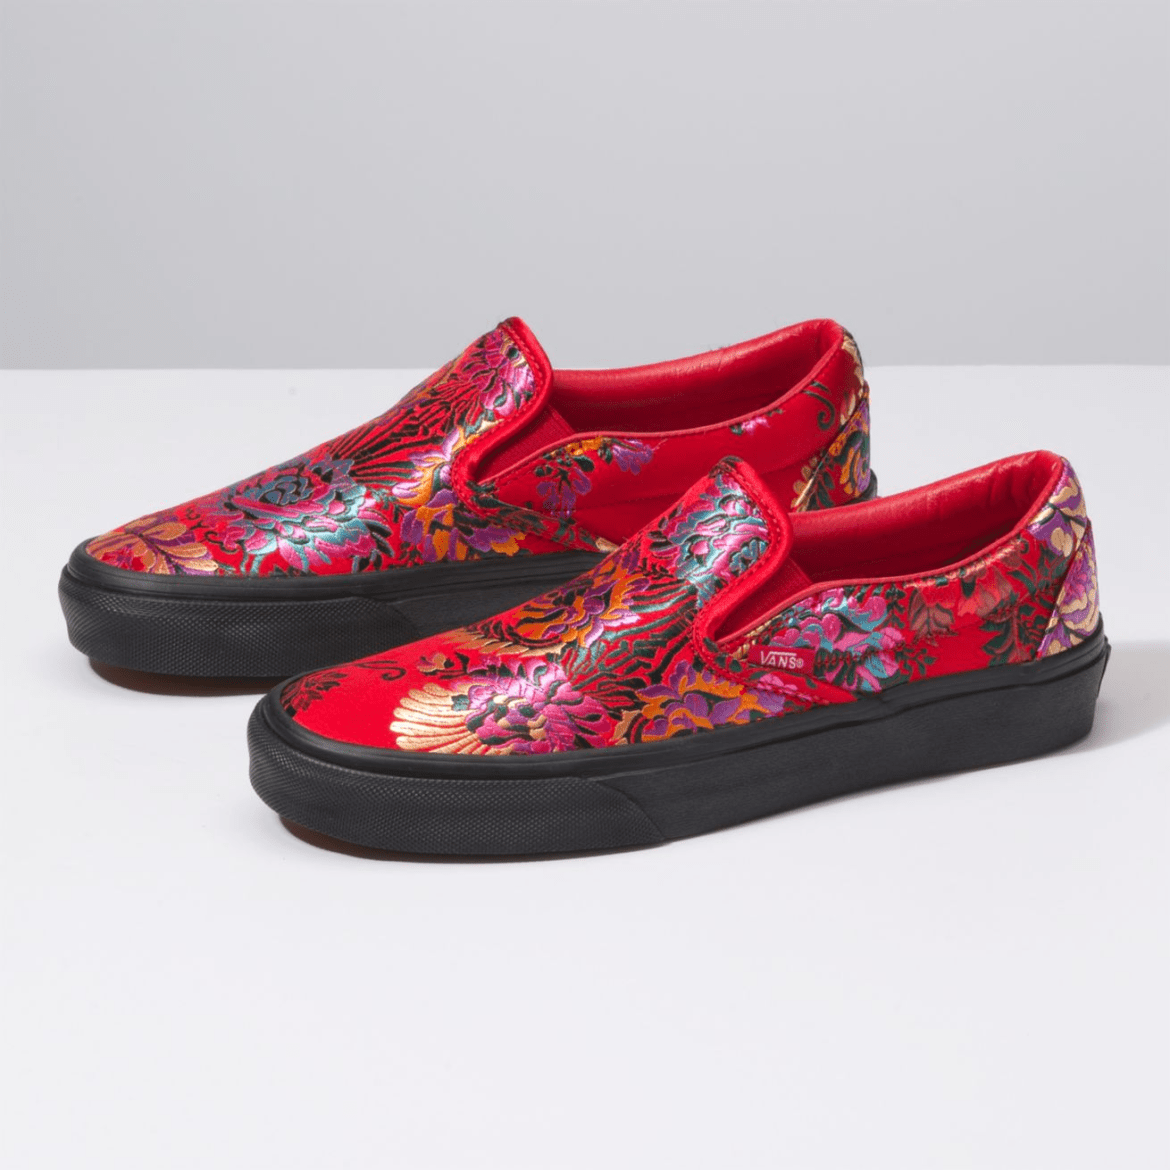 Vans Festival Satin Slip-on Red